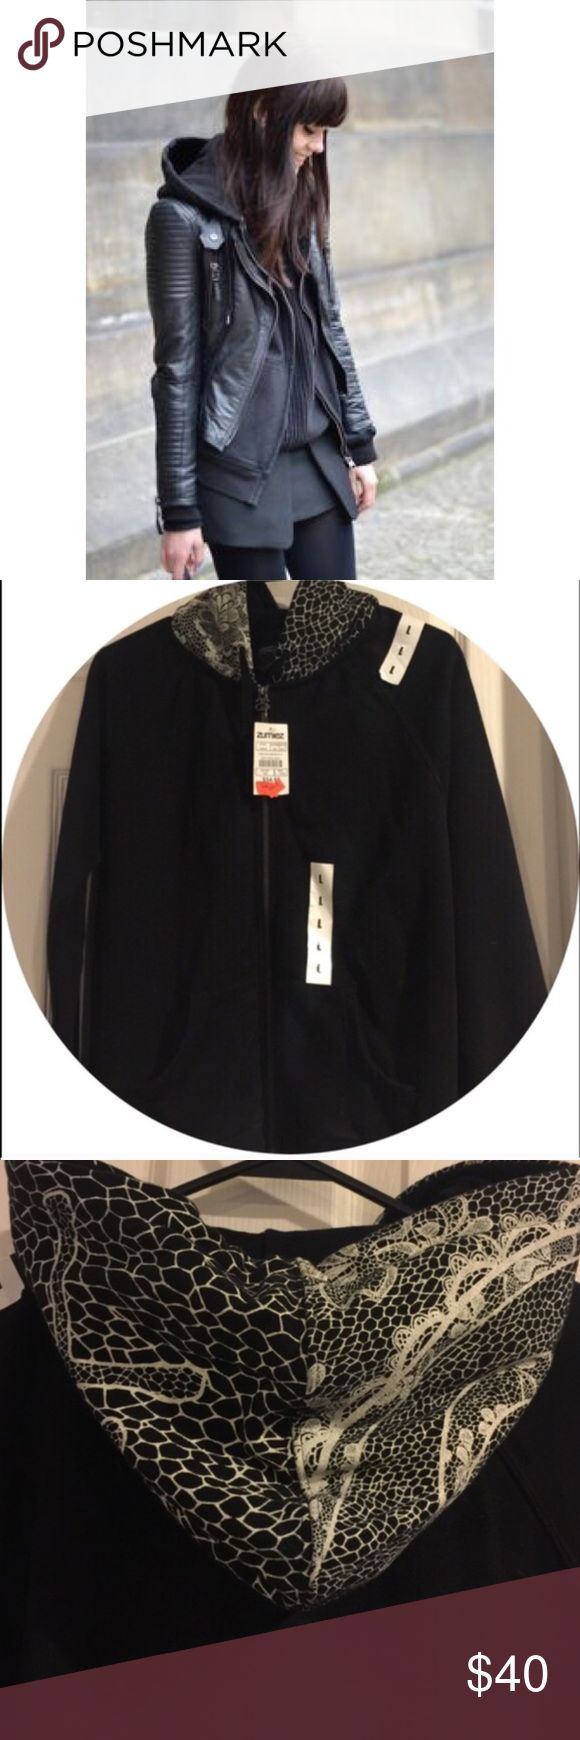 Black Zip Up Hoodie NWT Stussy Hoodie. Solid black with a cream lace design on hood. Never worn! Juniors Large = Women's Small. Cover photo used to show a cute way to style a black zip up sweatshirt. Stussy Tops Sweatshirts & Hoodies